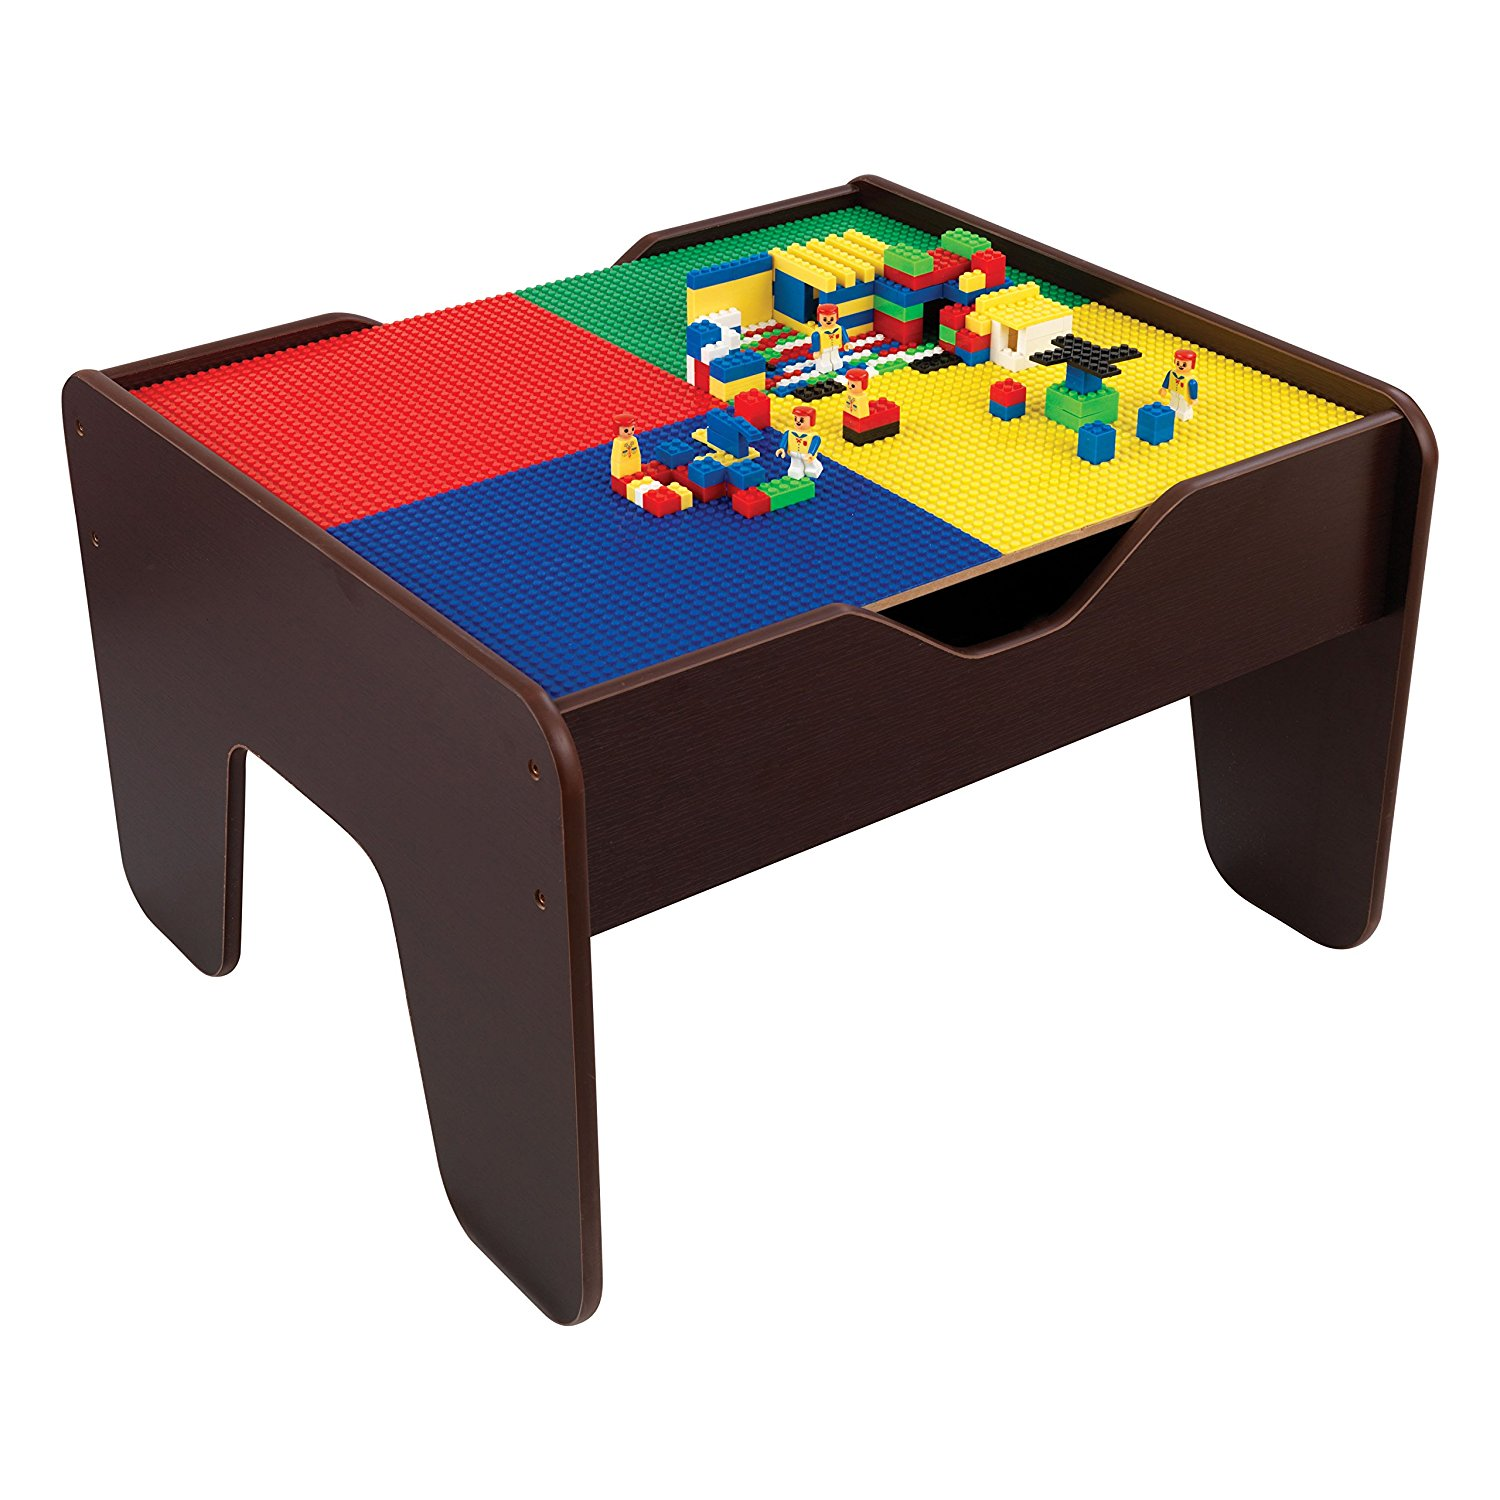 KidKraft 2 In 1 Activity Table With Board. Best Value